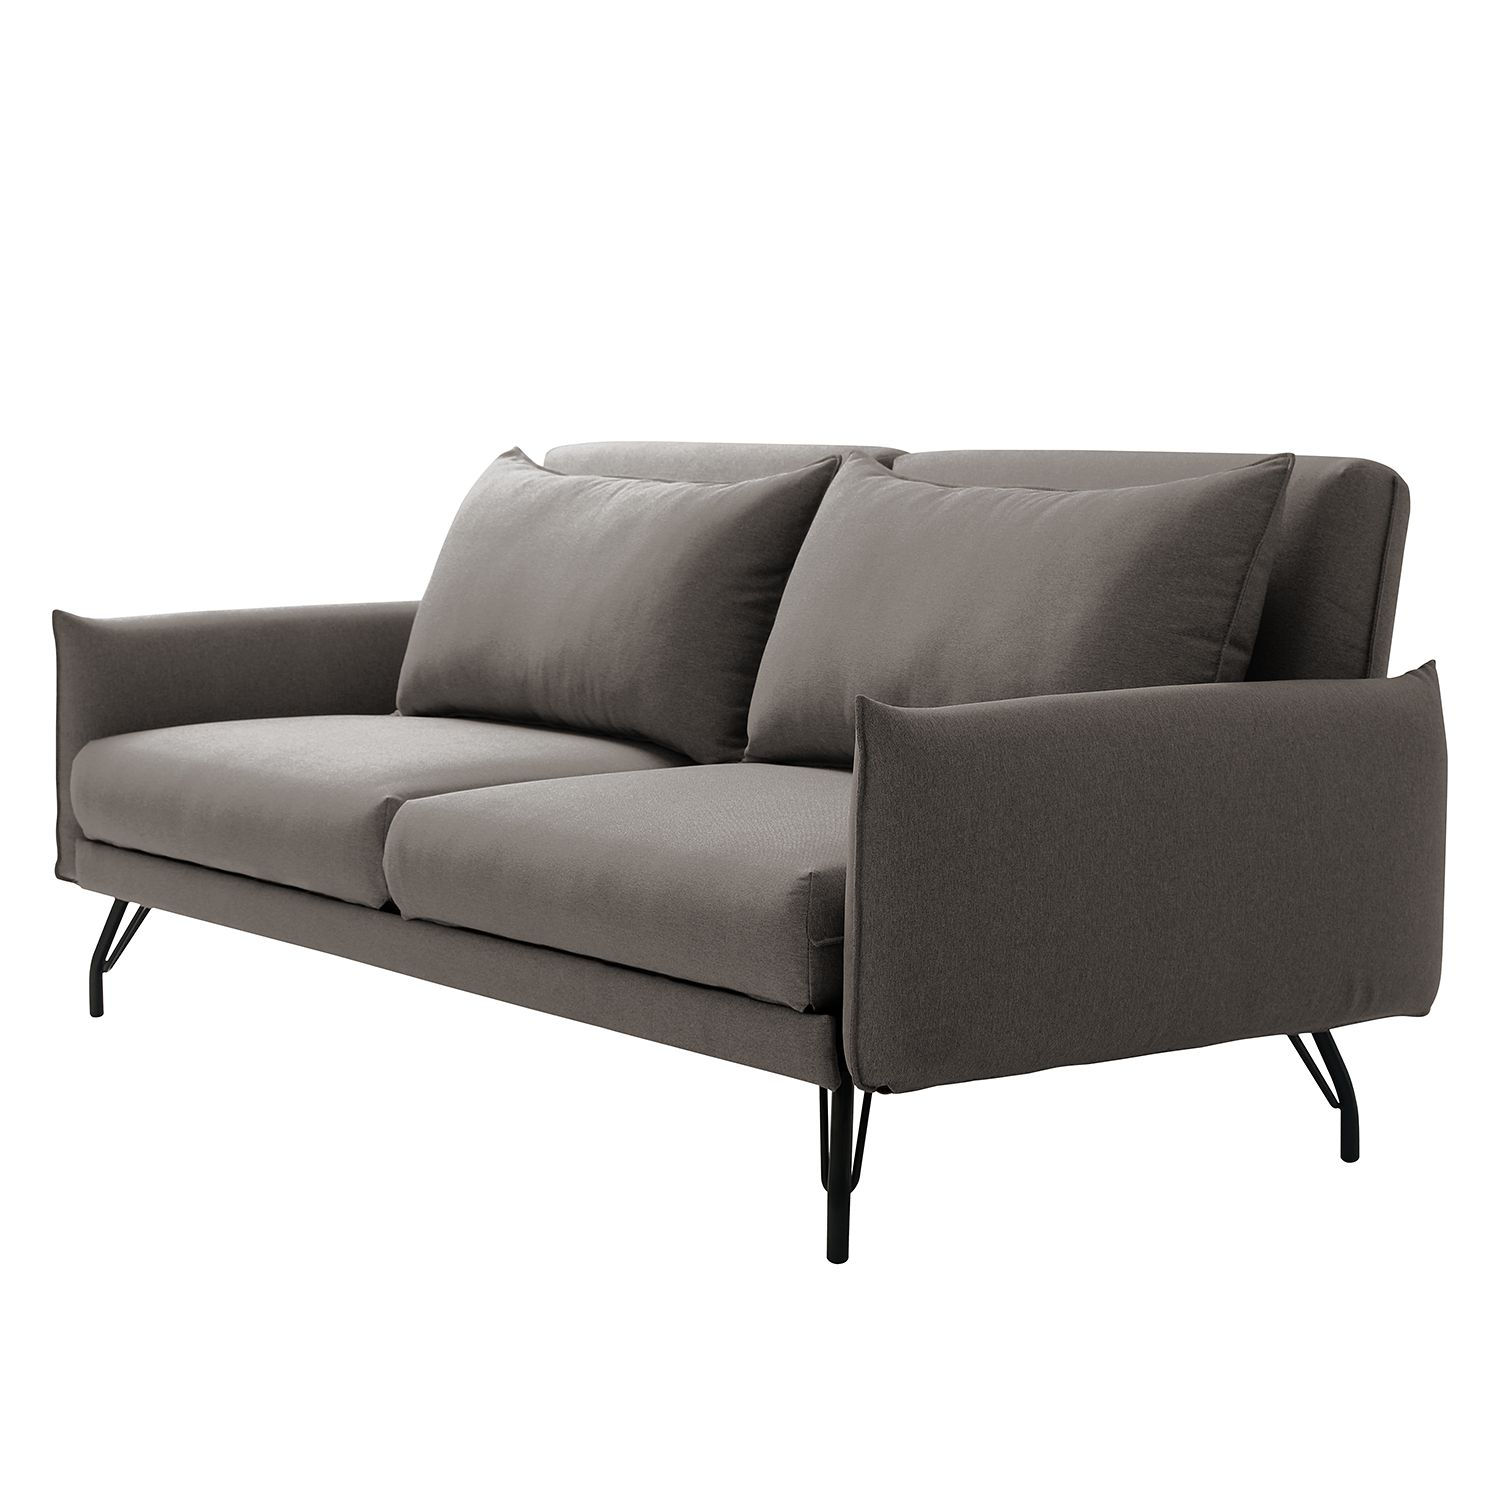 home24 schlafsofa imperia schmiede uwe beer. Black Bedroom Furniture Sets. Home Design Ideas